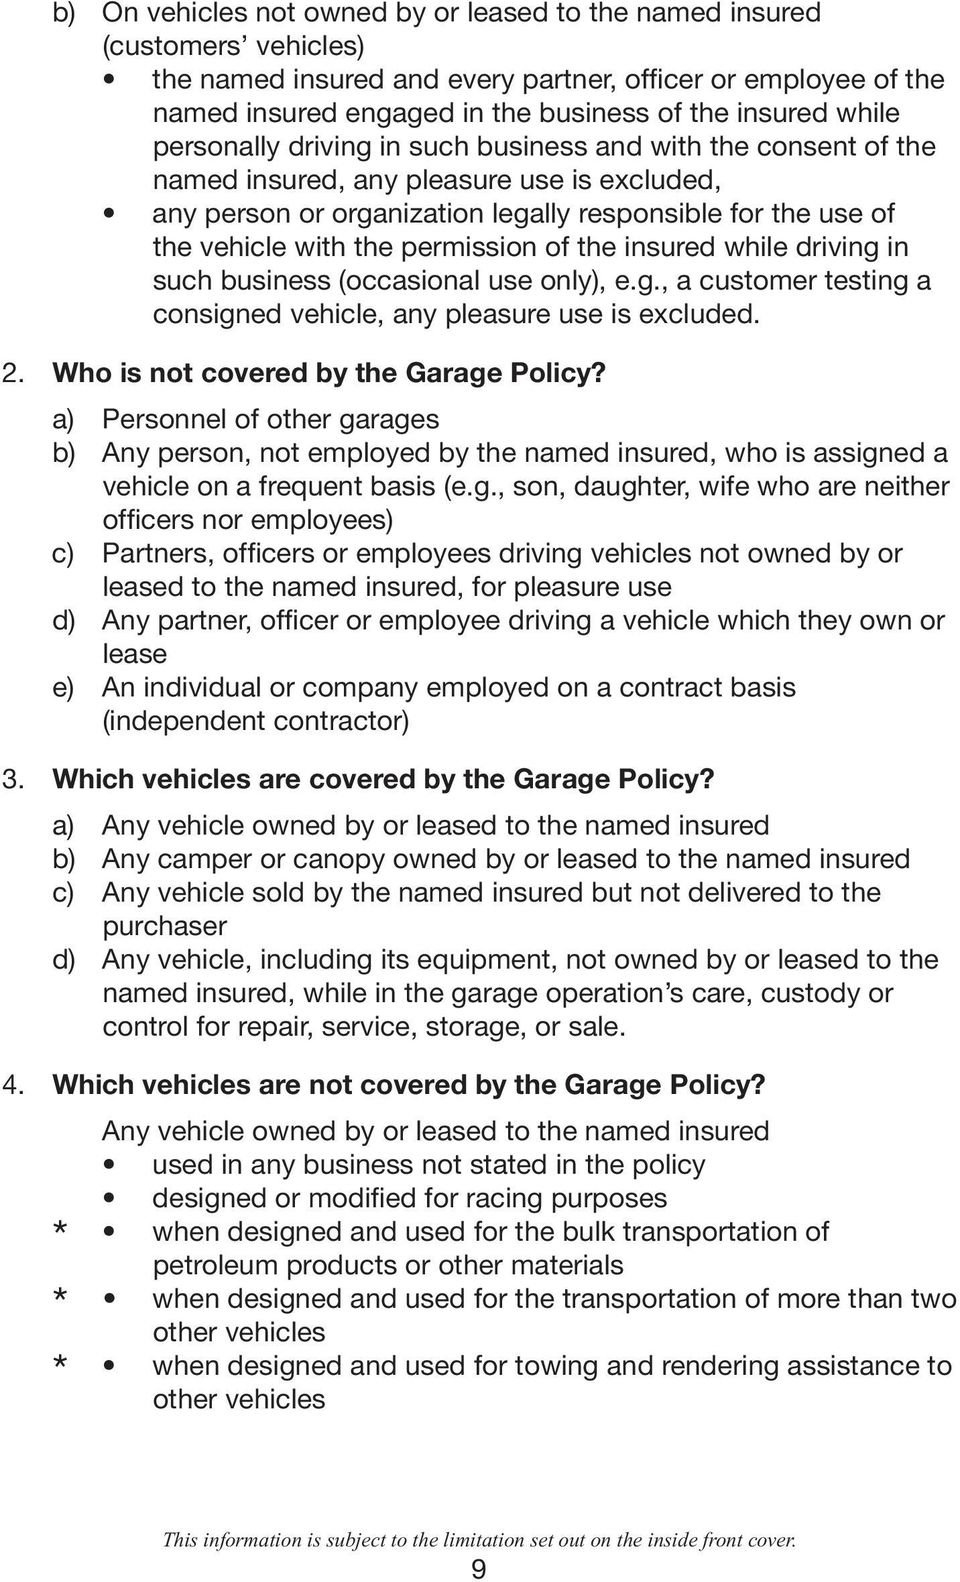 permission of the insured while driving in such business (occasional use only), e.g., a customer testing a consigned vehicle, any pleasure use is excluded. 2. Who is not covered by the Garage Policy?